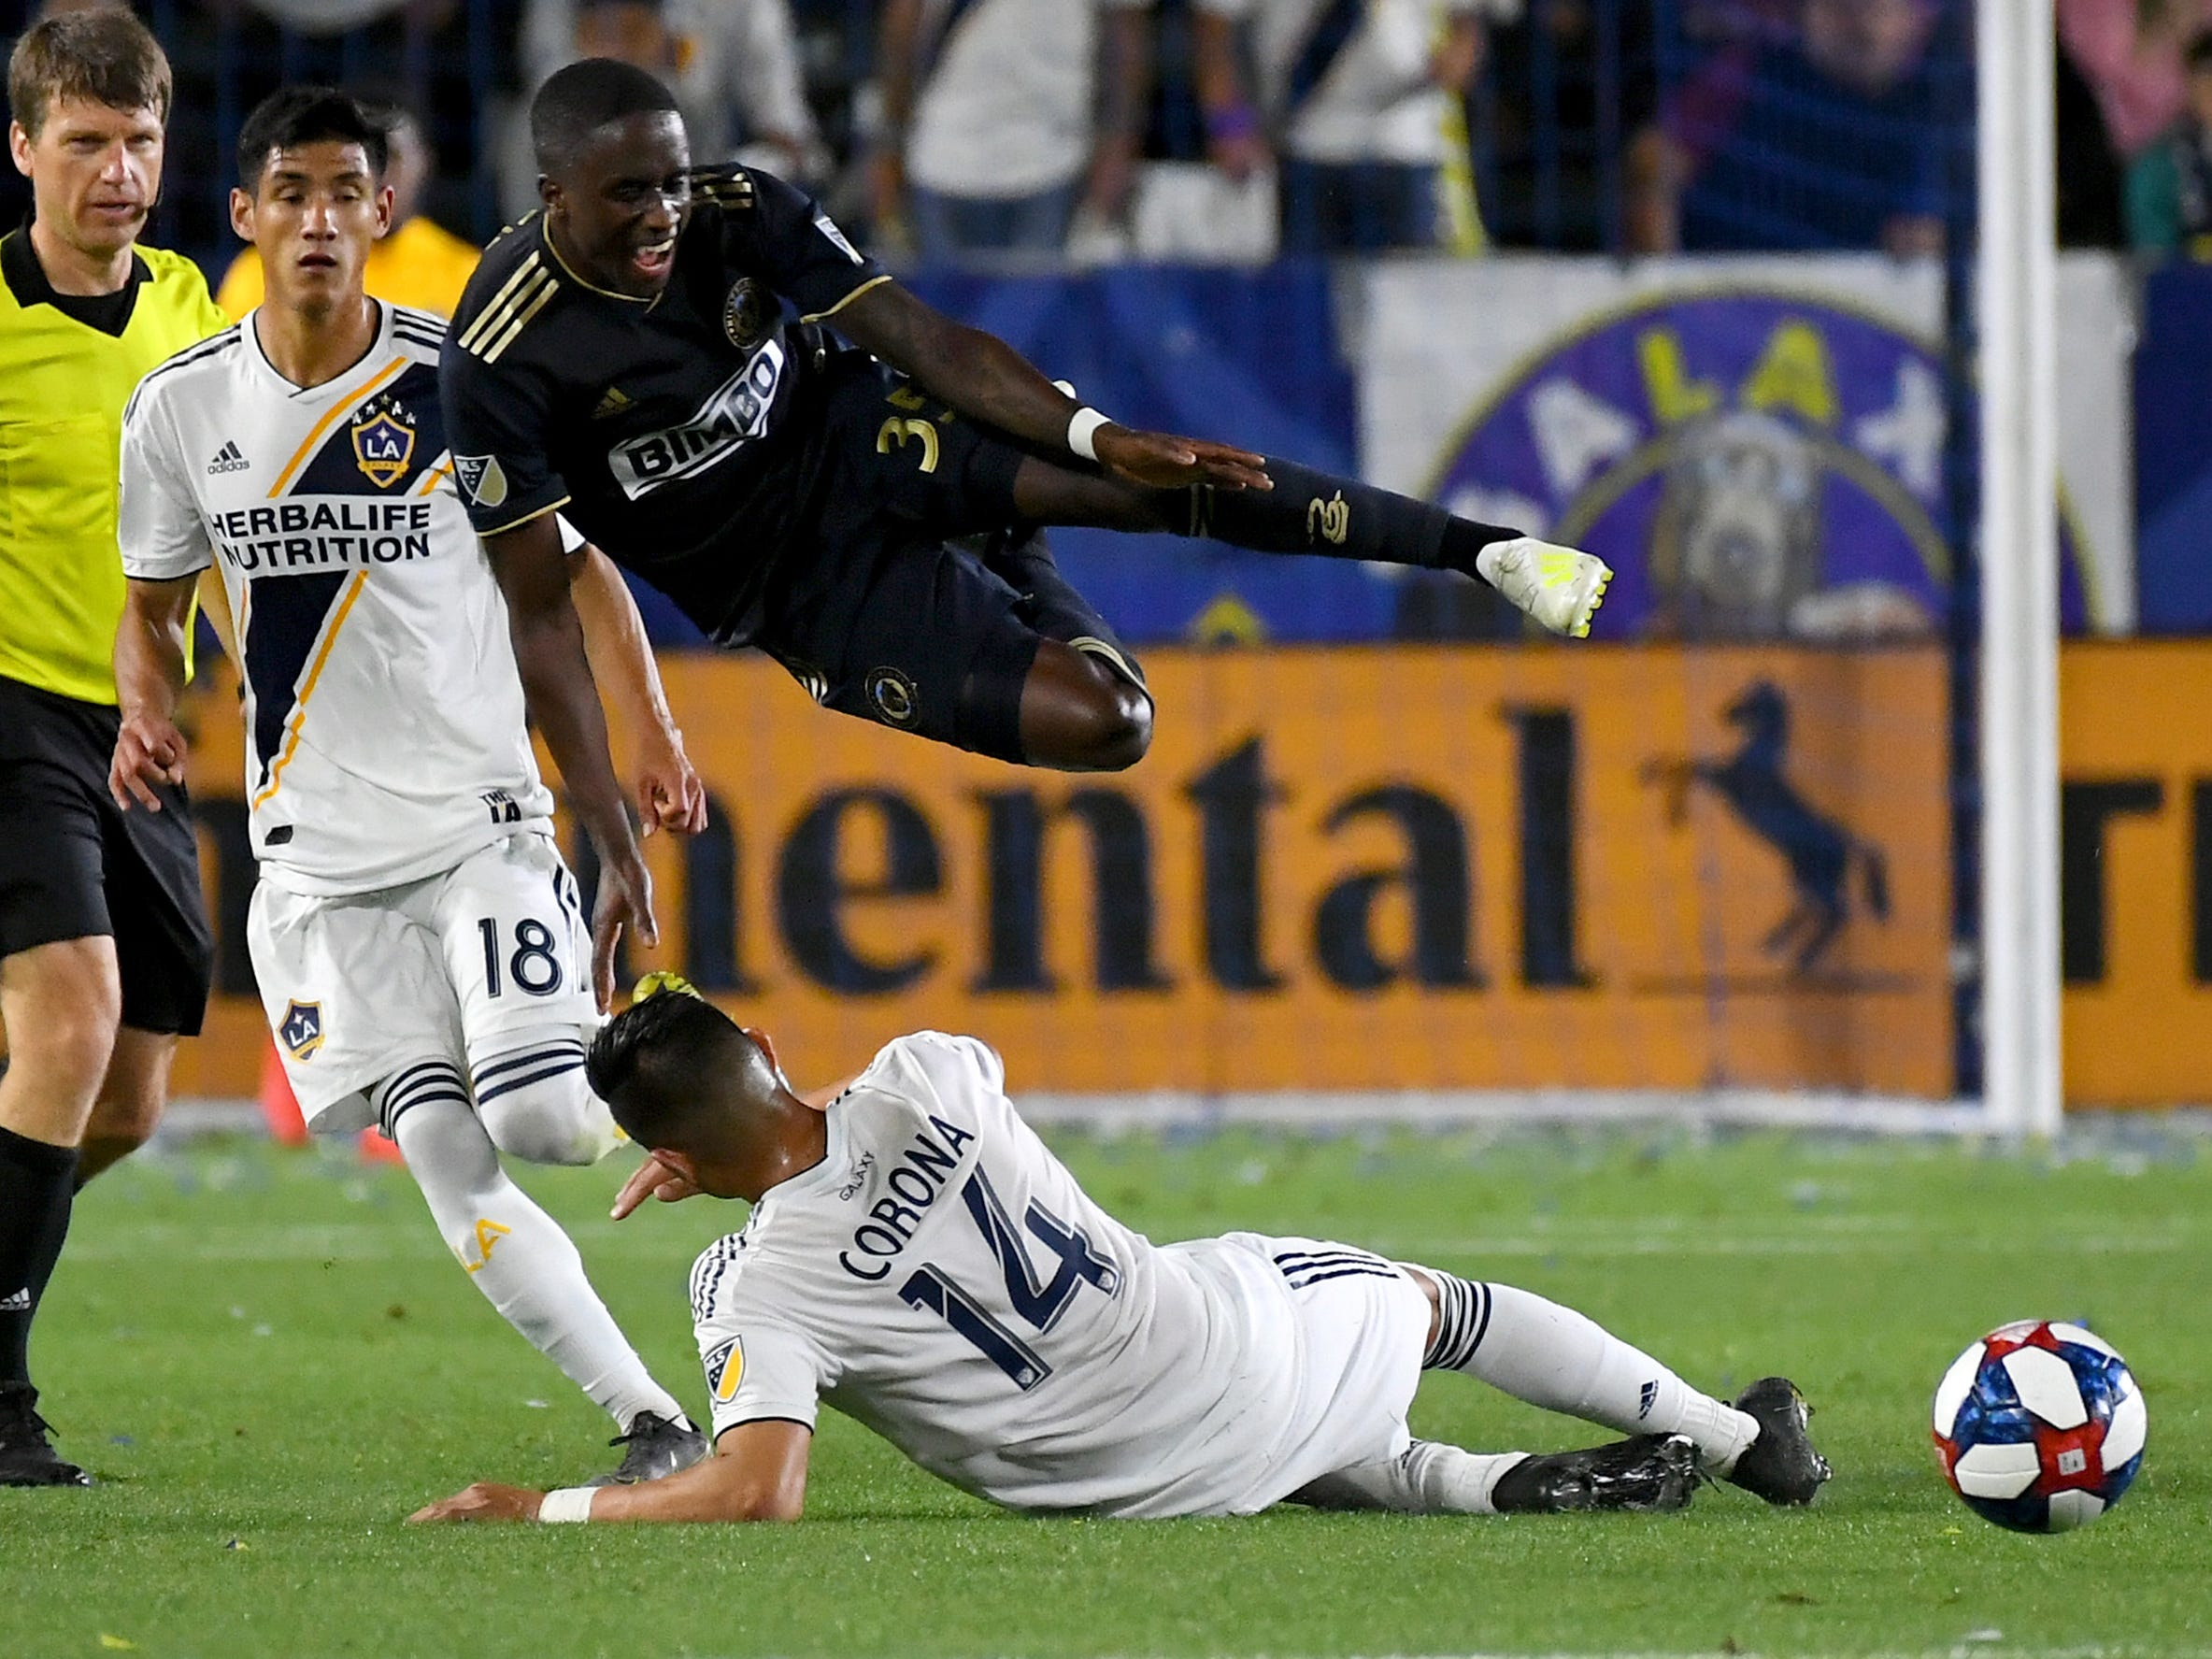 April 13: Philadelphia Union midfielder Jamiro Monteiro (35) jumps over Los Angeles Galaxy midfielder Joe Corona (14) to avoid a collision in the first half of the game at StubHub Center. The Galaxy won the game, 2-0.